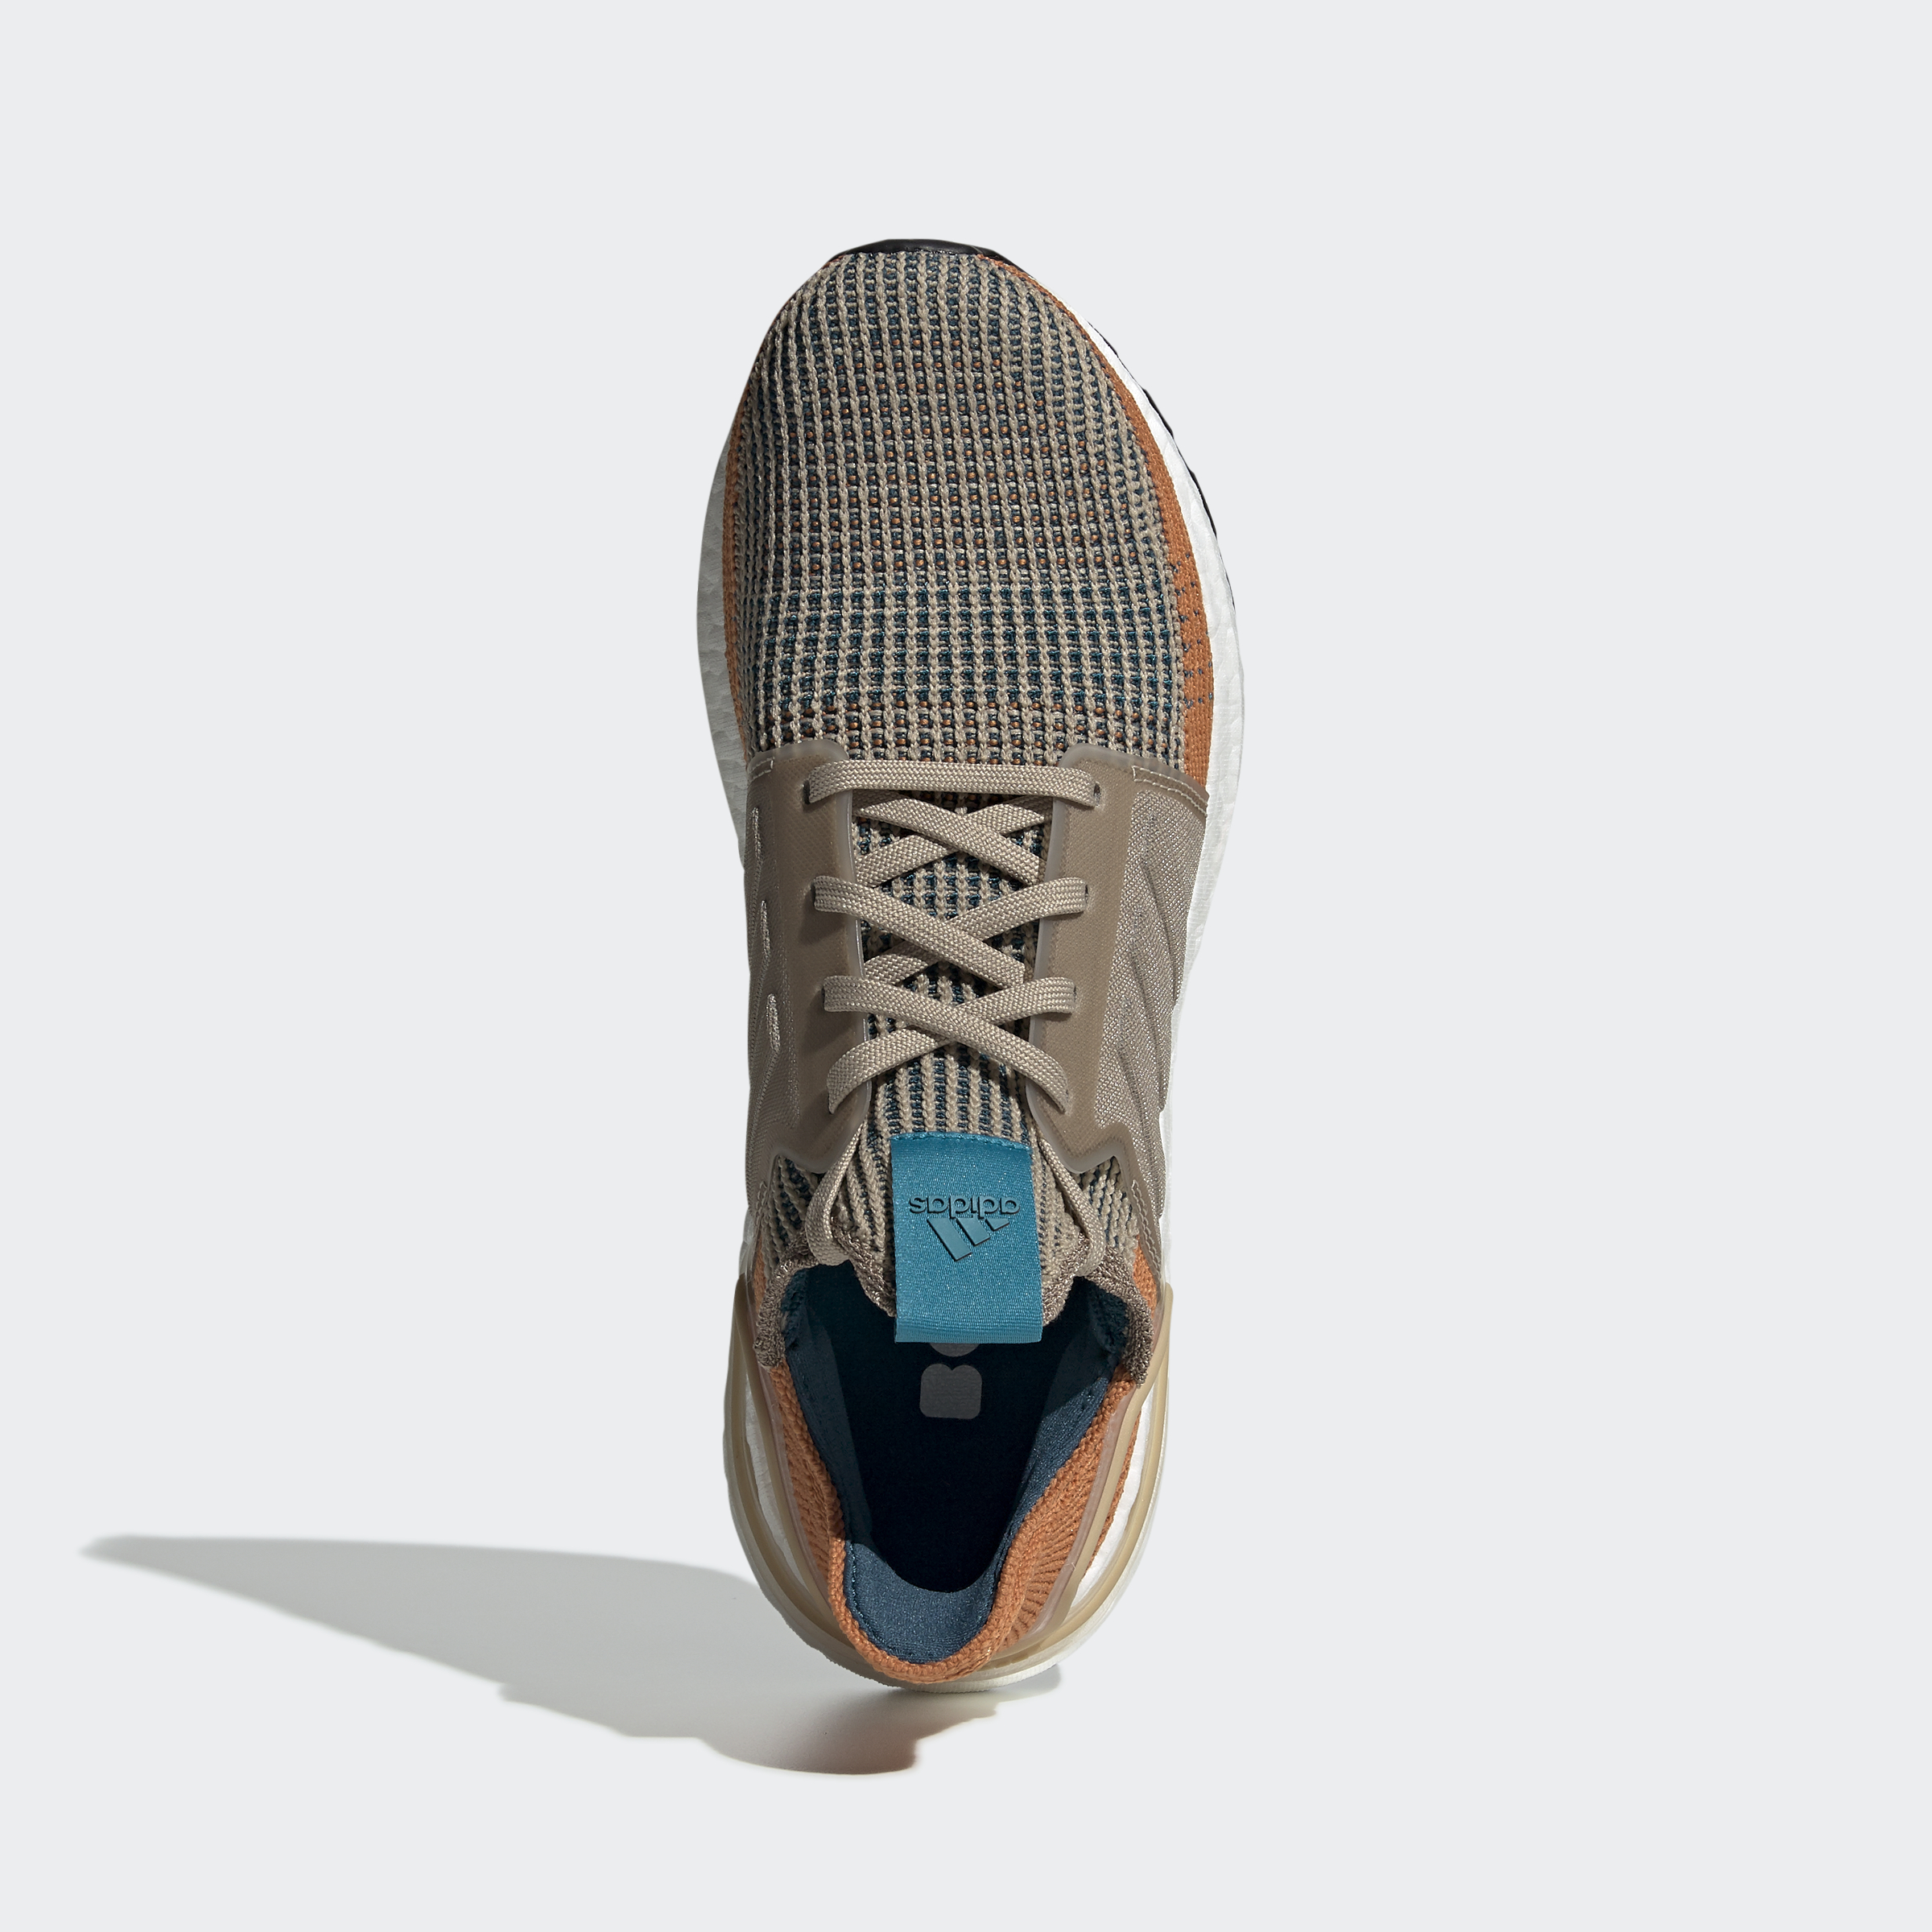 adidas-Ultraboost-19-Shoes-Athletic-amp-Sneakers thumbnail 116